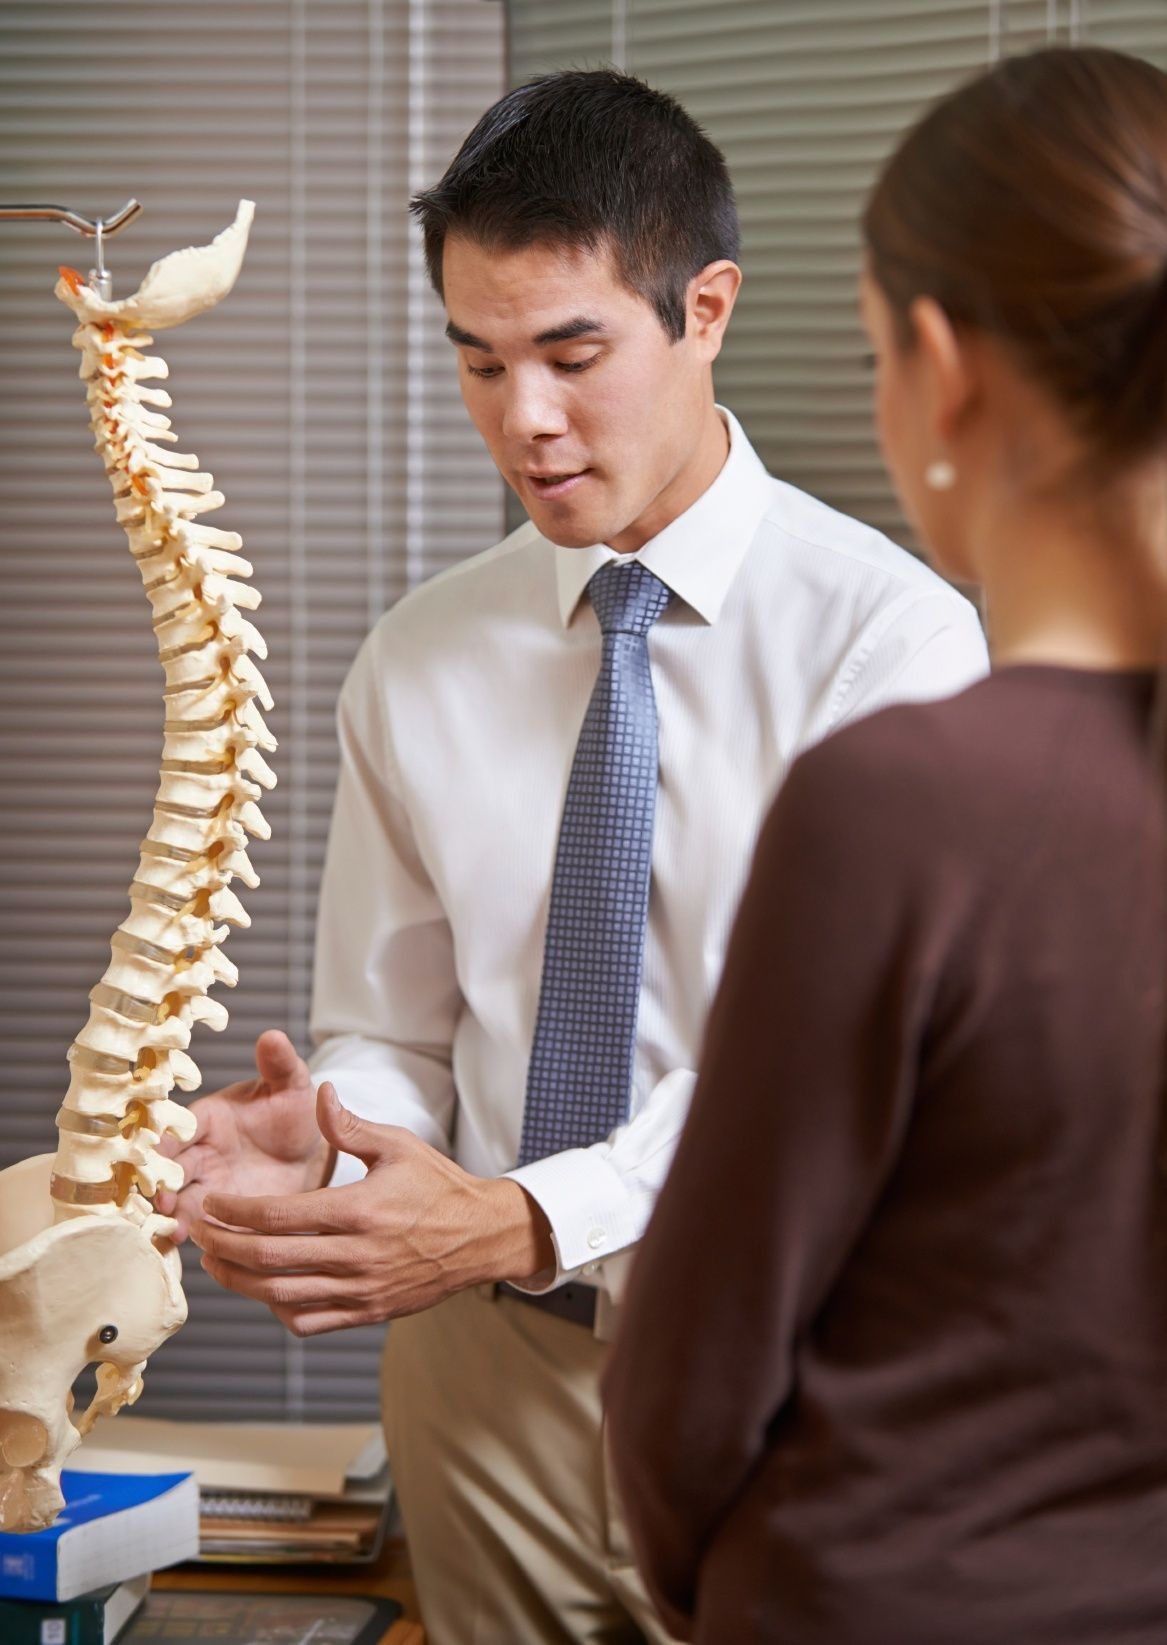 How Can a Chiropractor Help Me?